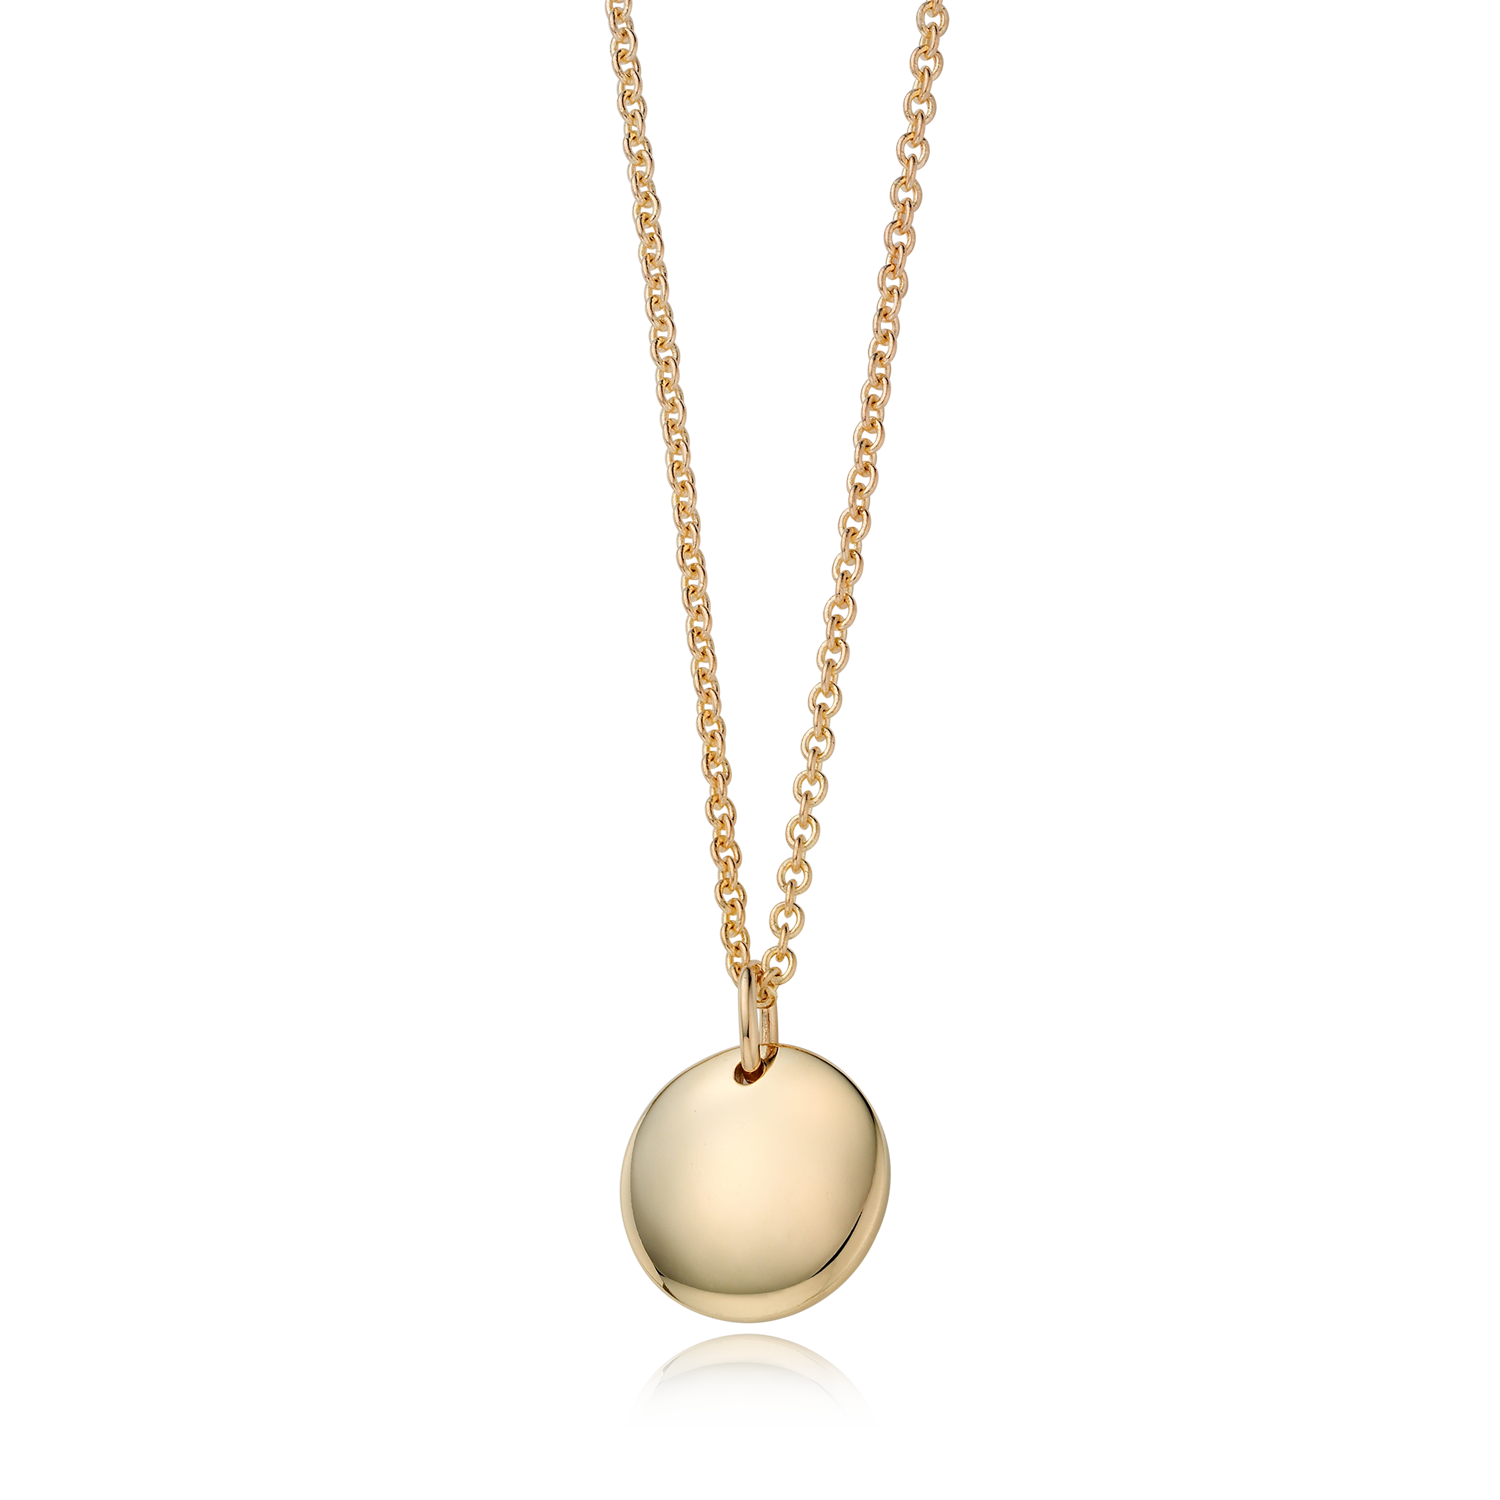 kaiu Lady 14k Gold Round Necklace